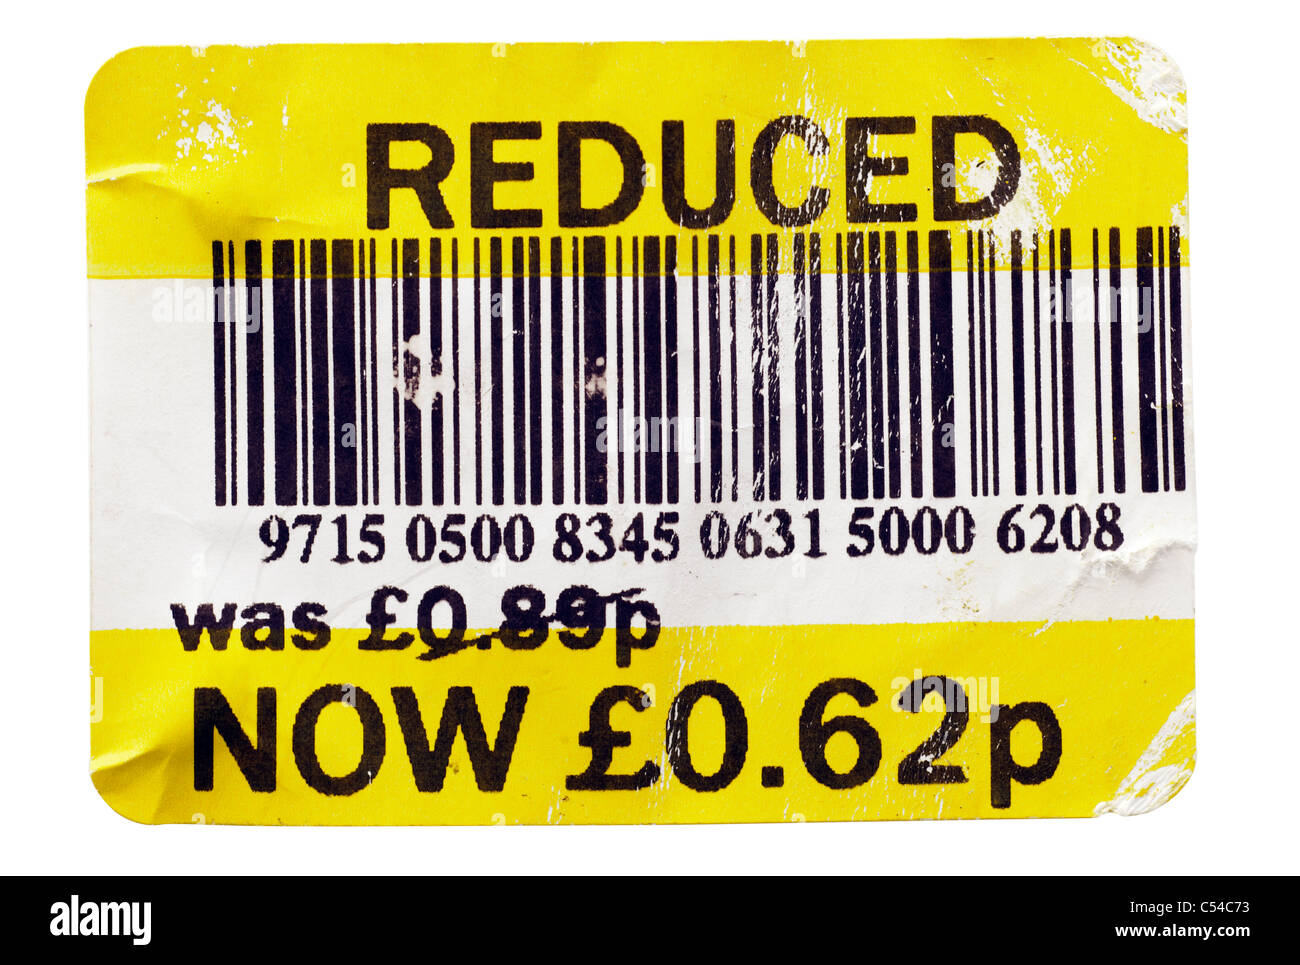 Tatty Supermarket reduction label giving a reduced price from 89 pence to 62 pence. EDITORIAL ONLY - Stock Image